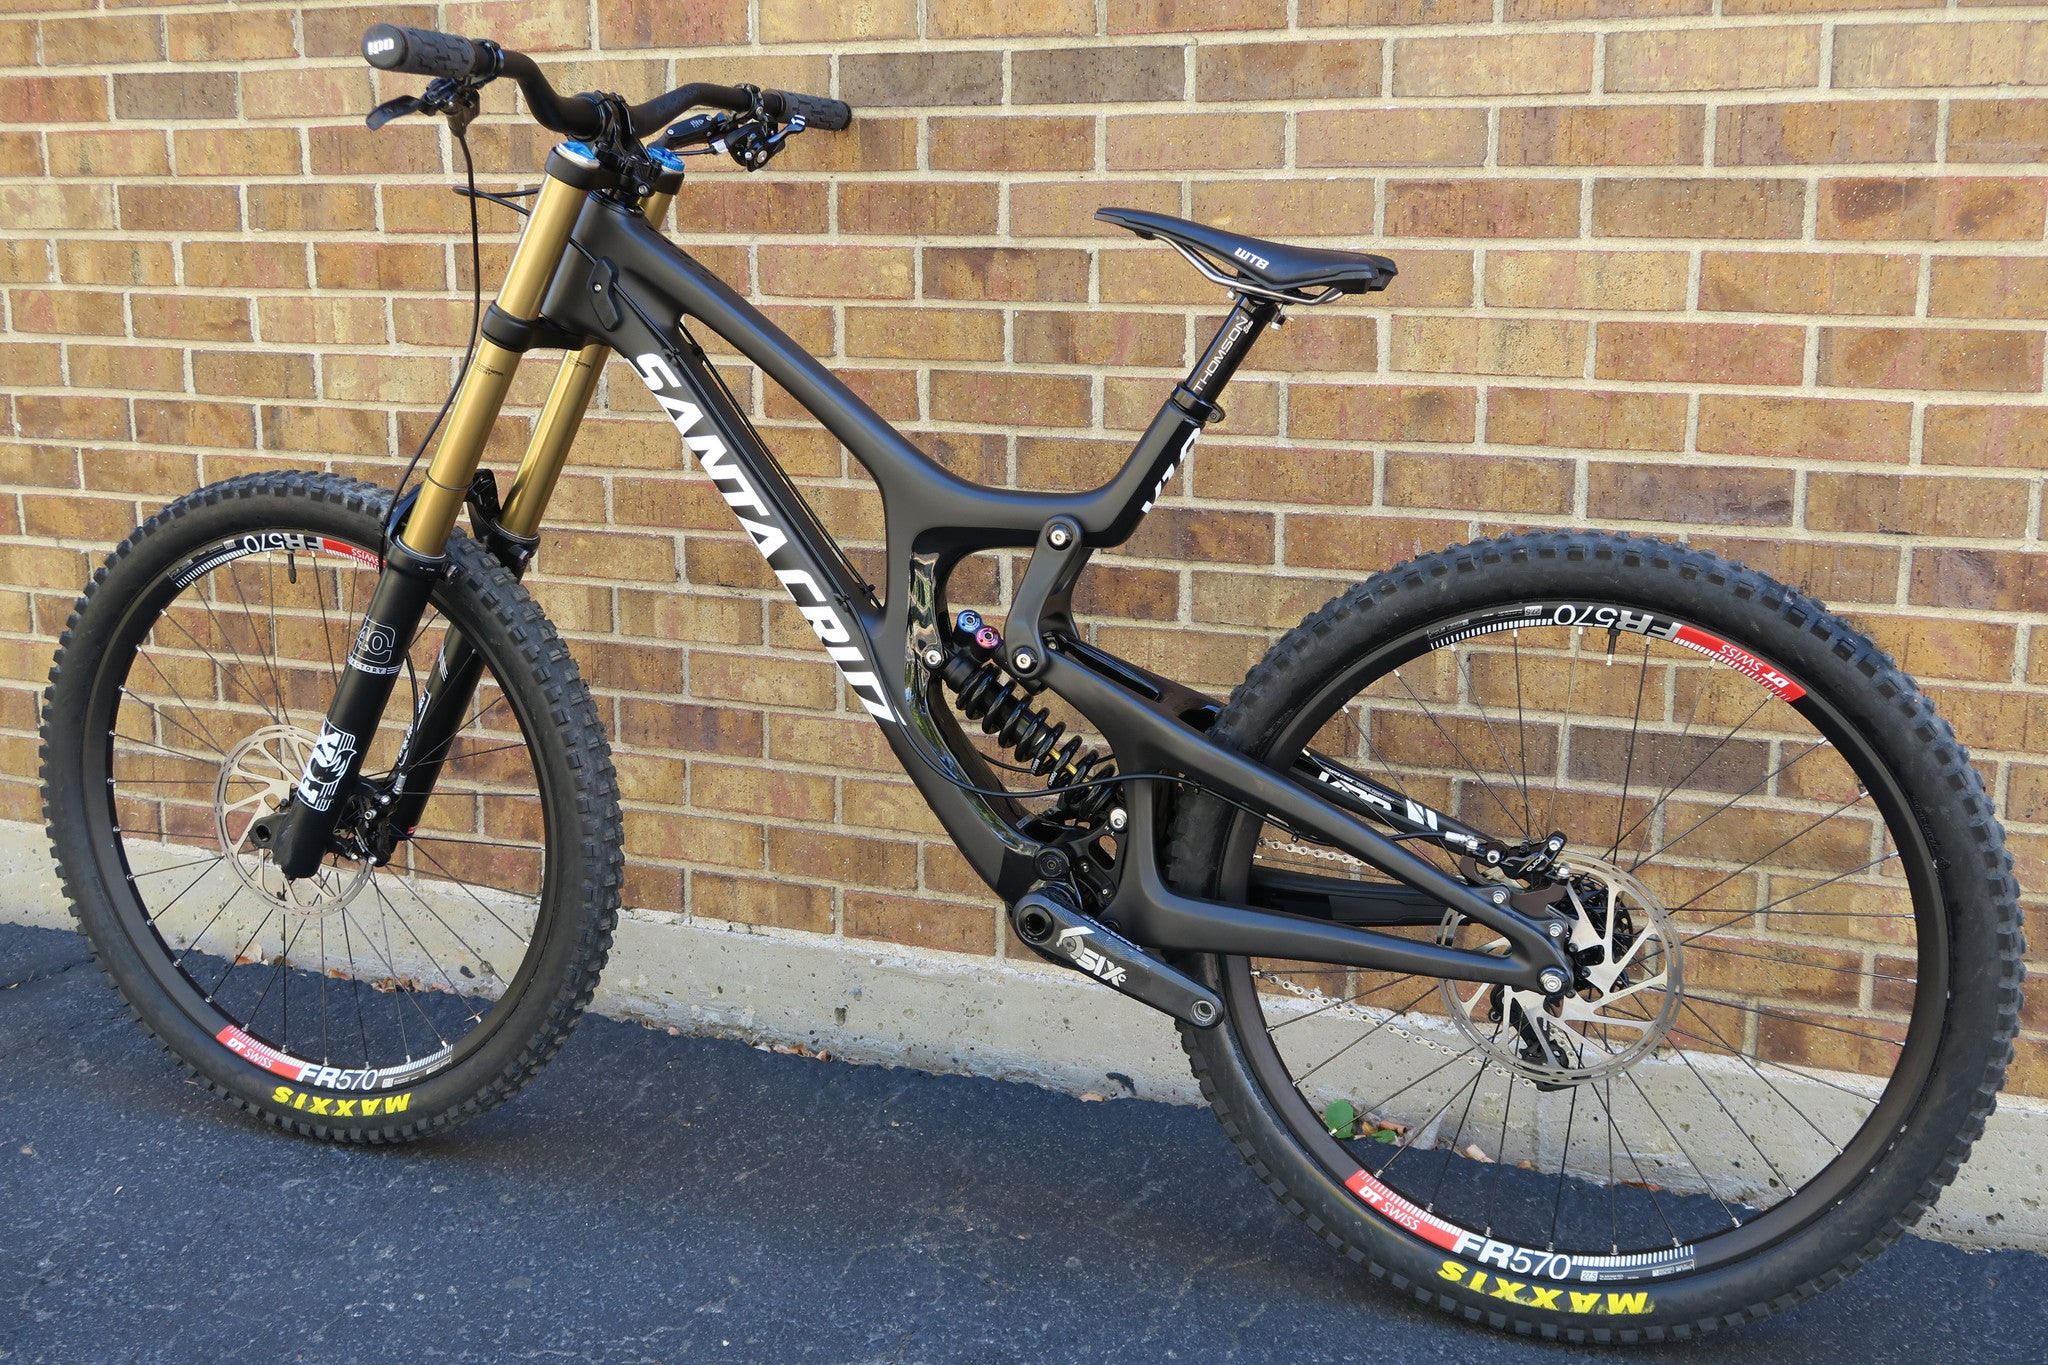 2016 SANTA CRUZ V10 CARBON CC 27.5